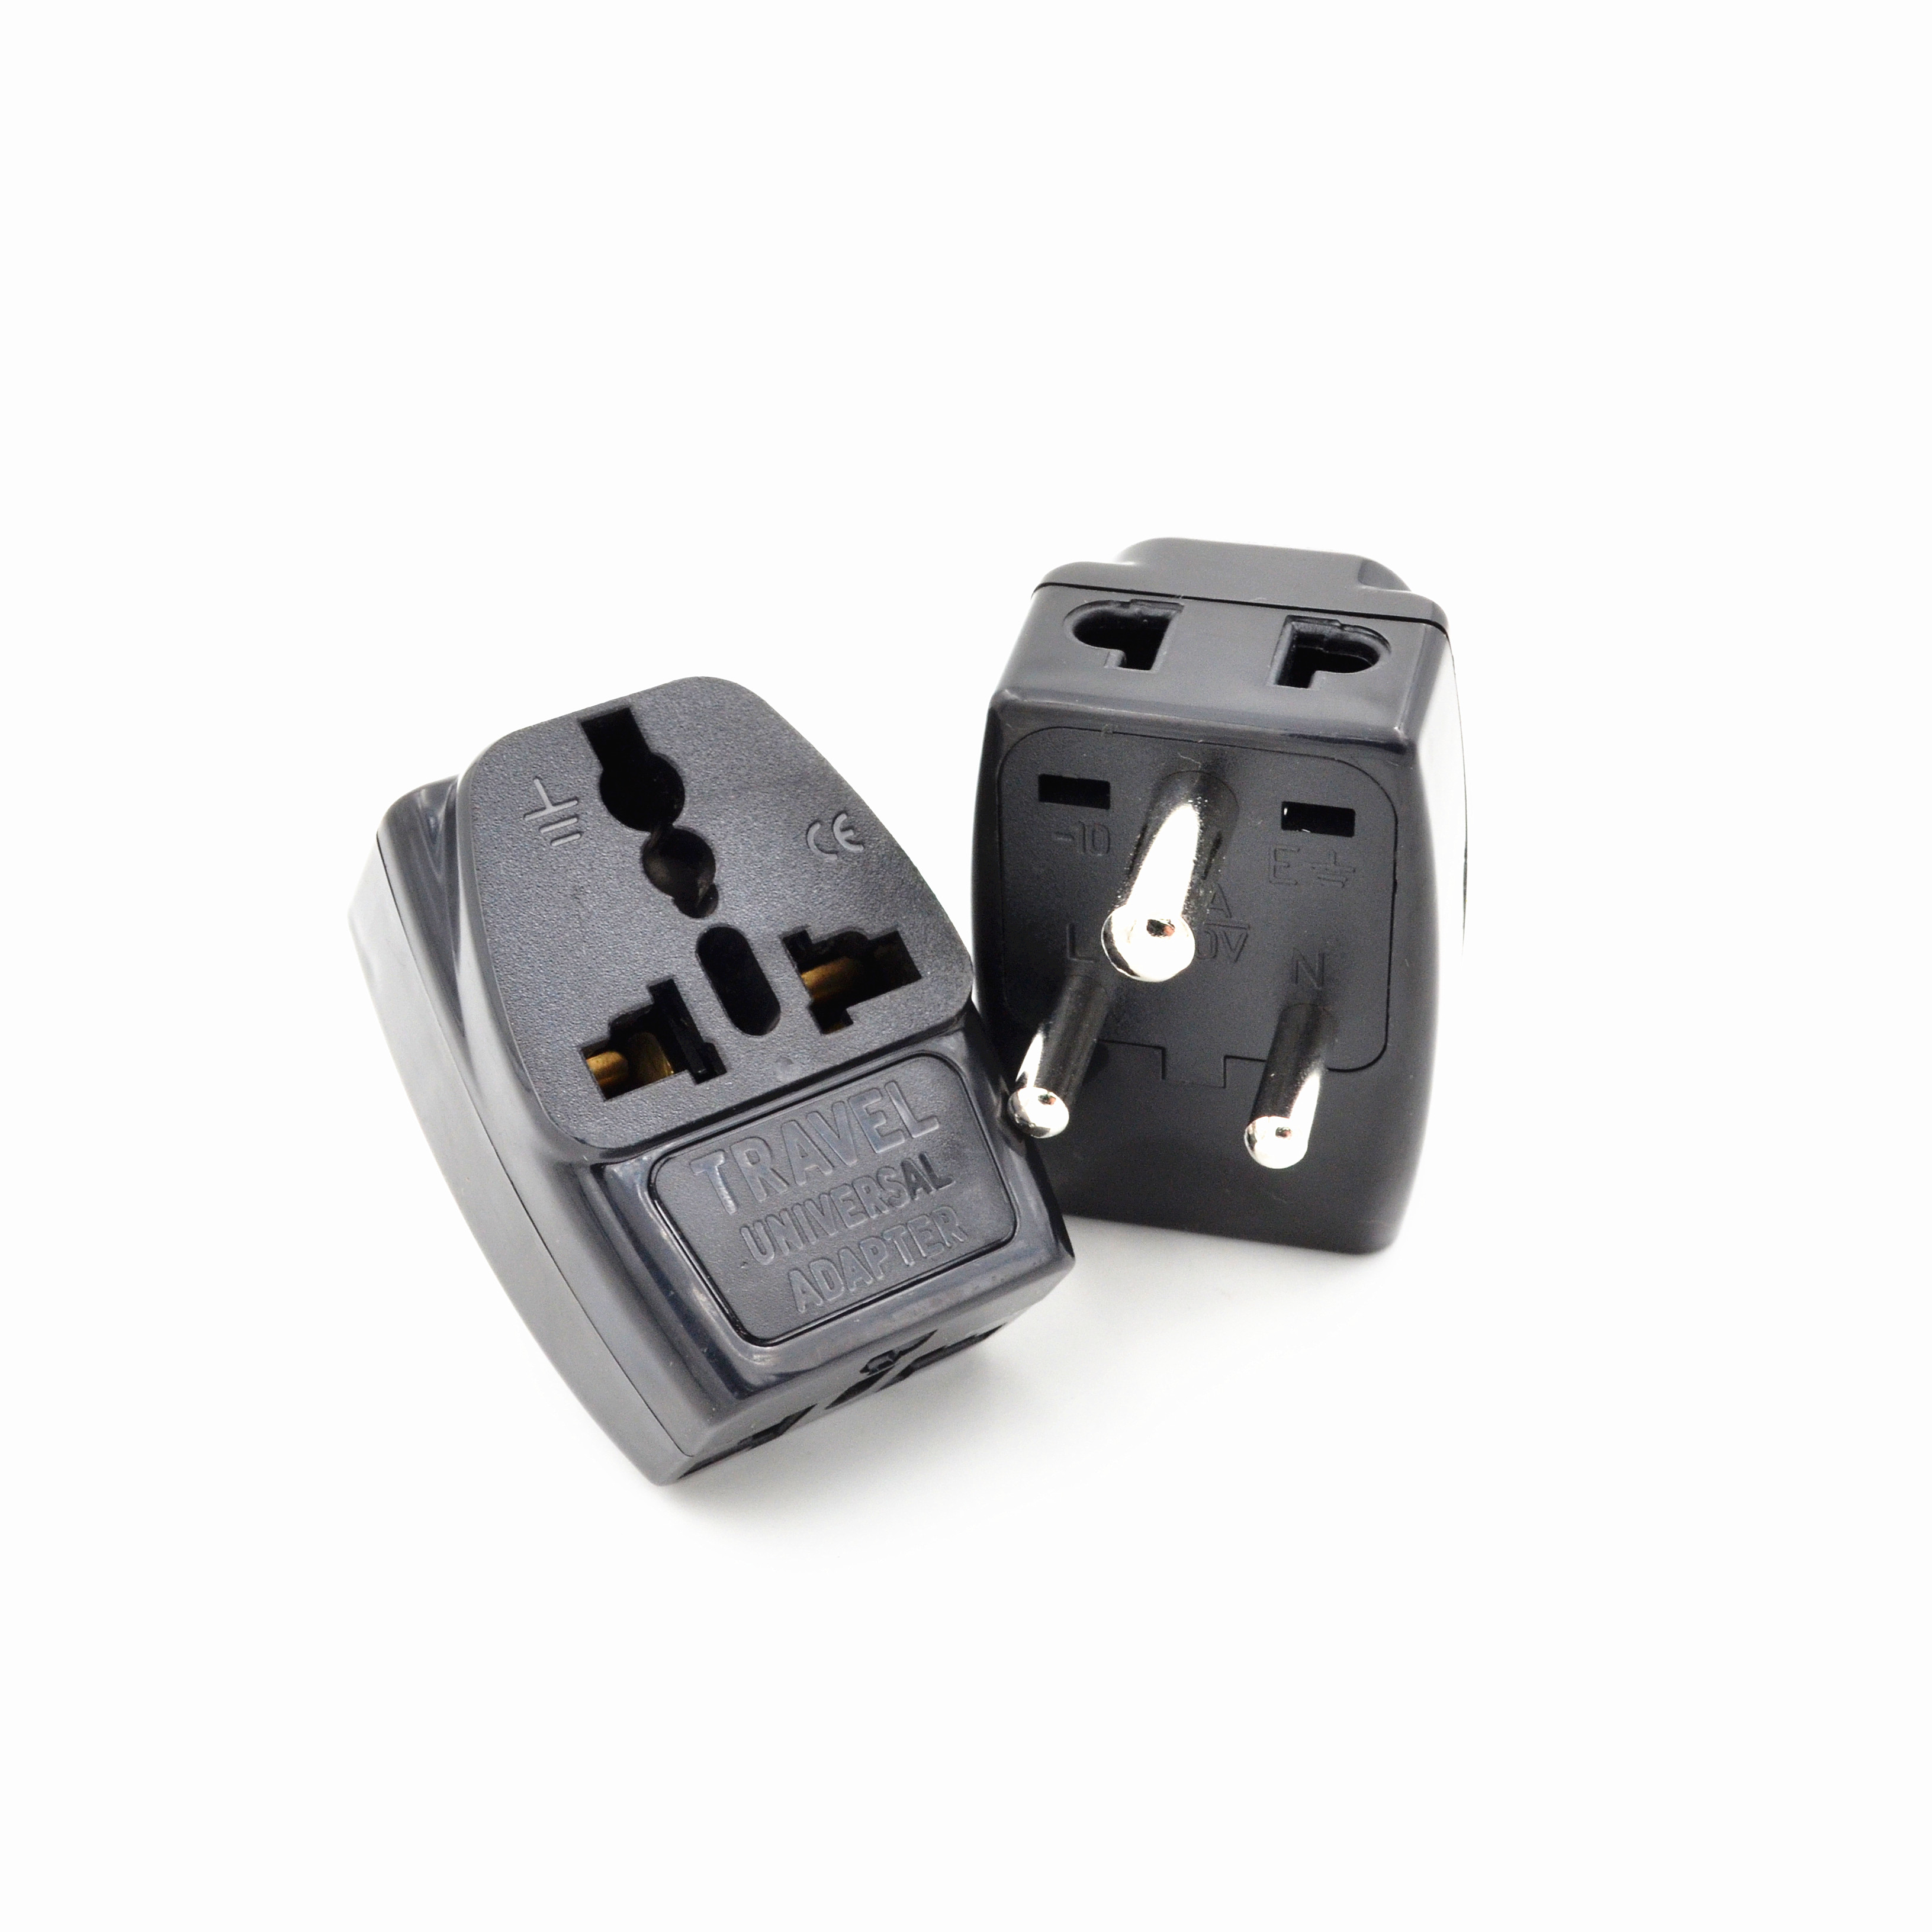 Us to uk ac power plug white black travel wall adapter plug converter - 2016 Type D Travel Adapter With 3 Power Outlet Black Color 1 To 2 To Uk